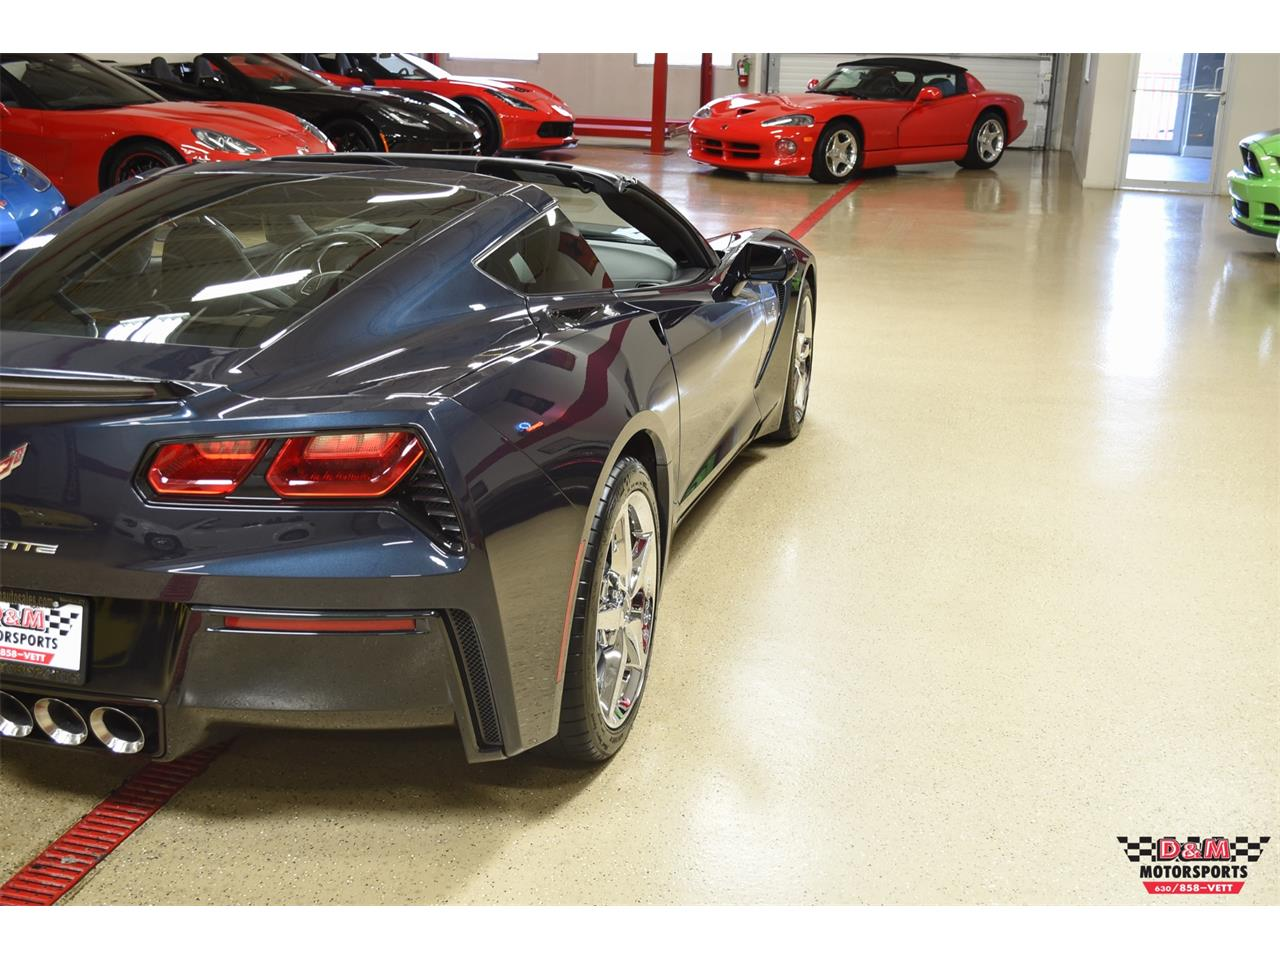 Large Picture of 2015 Corvette located in Illinois - $45,995.00 Offered by D & M Motorsports - QGAK